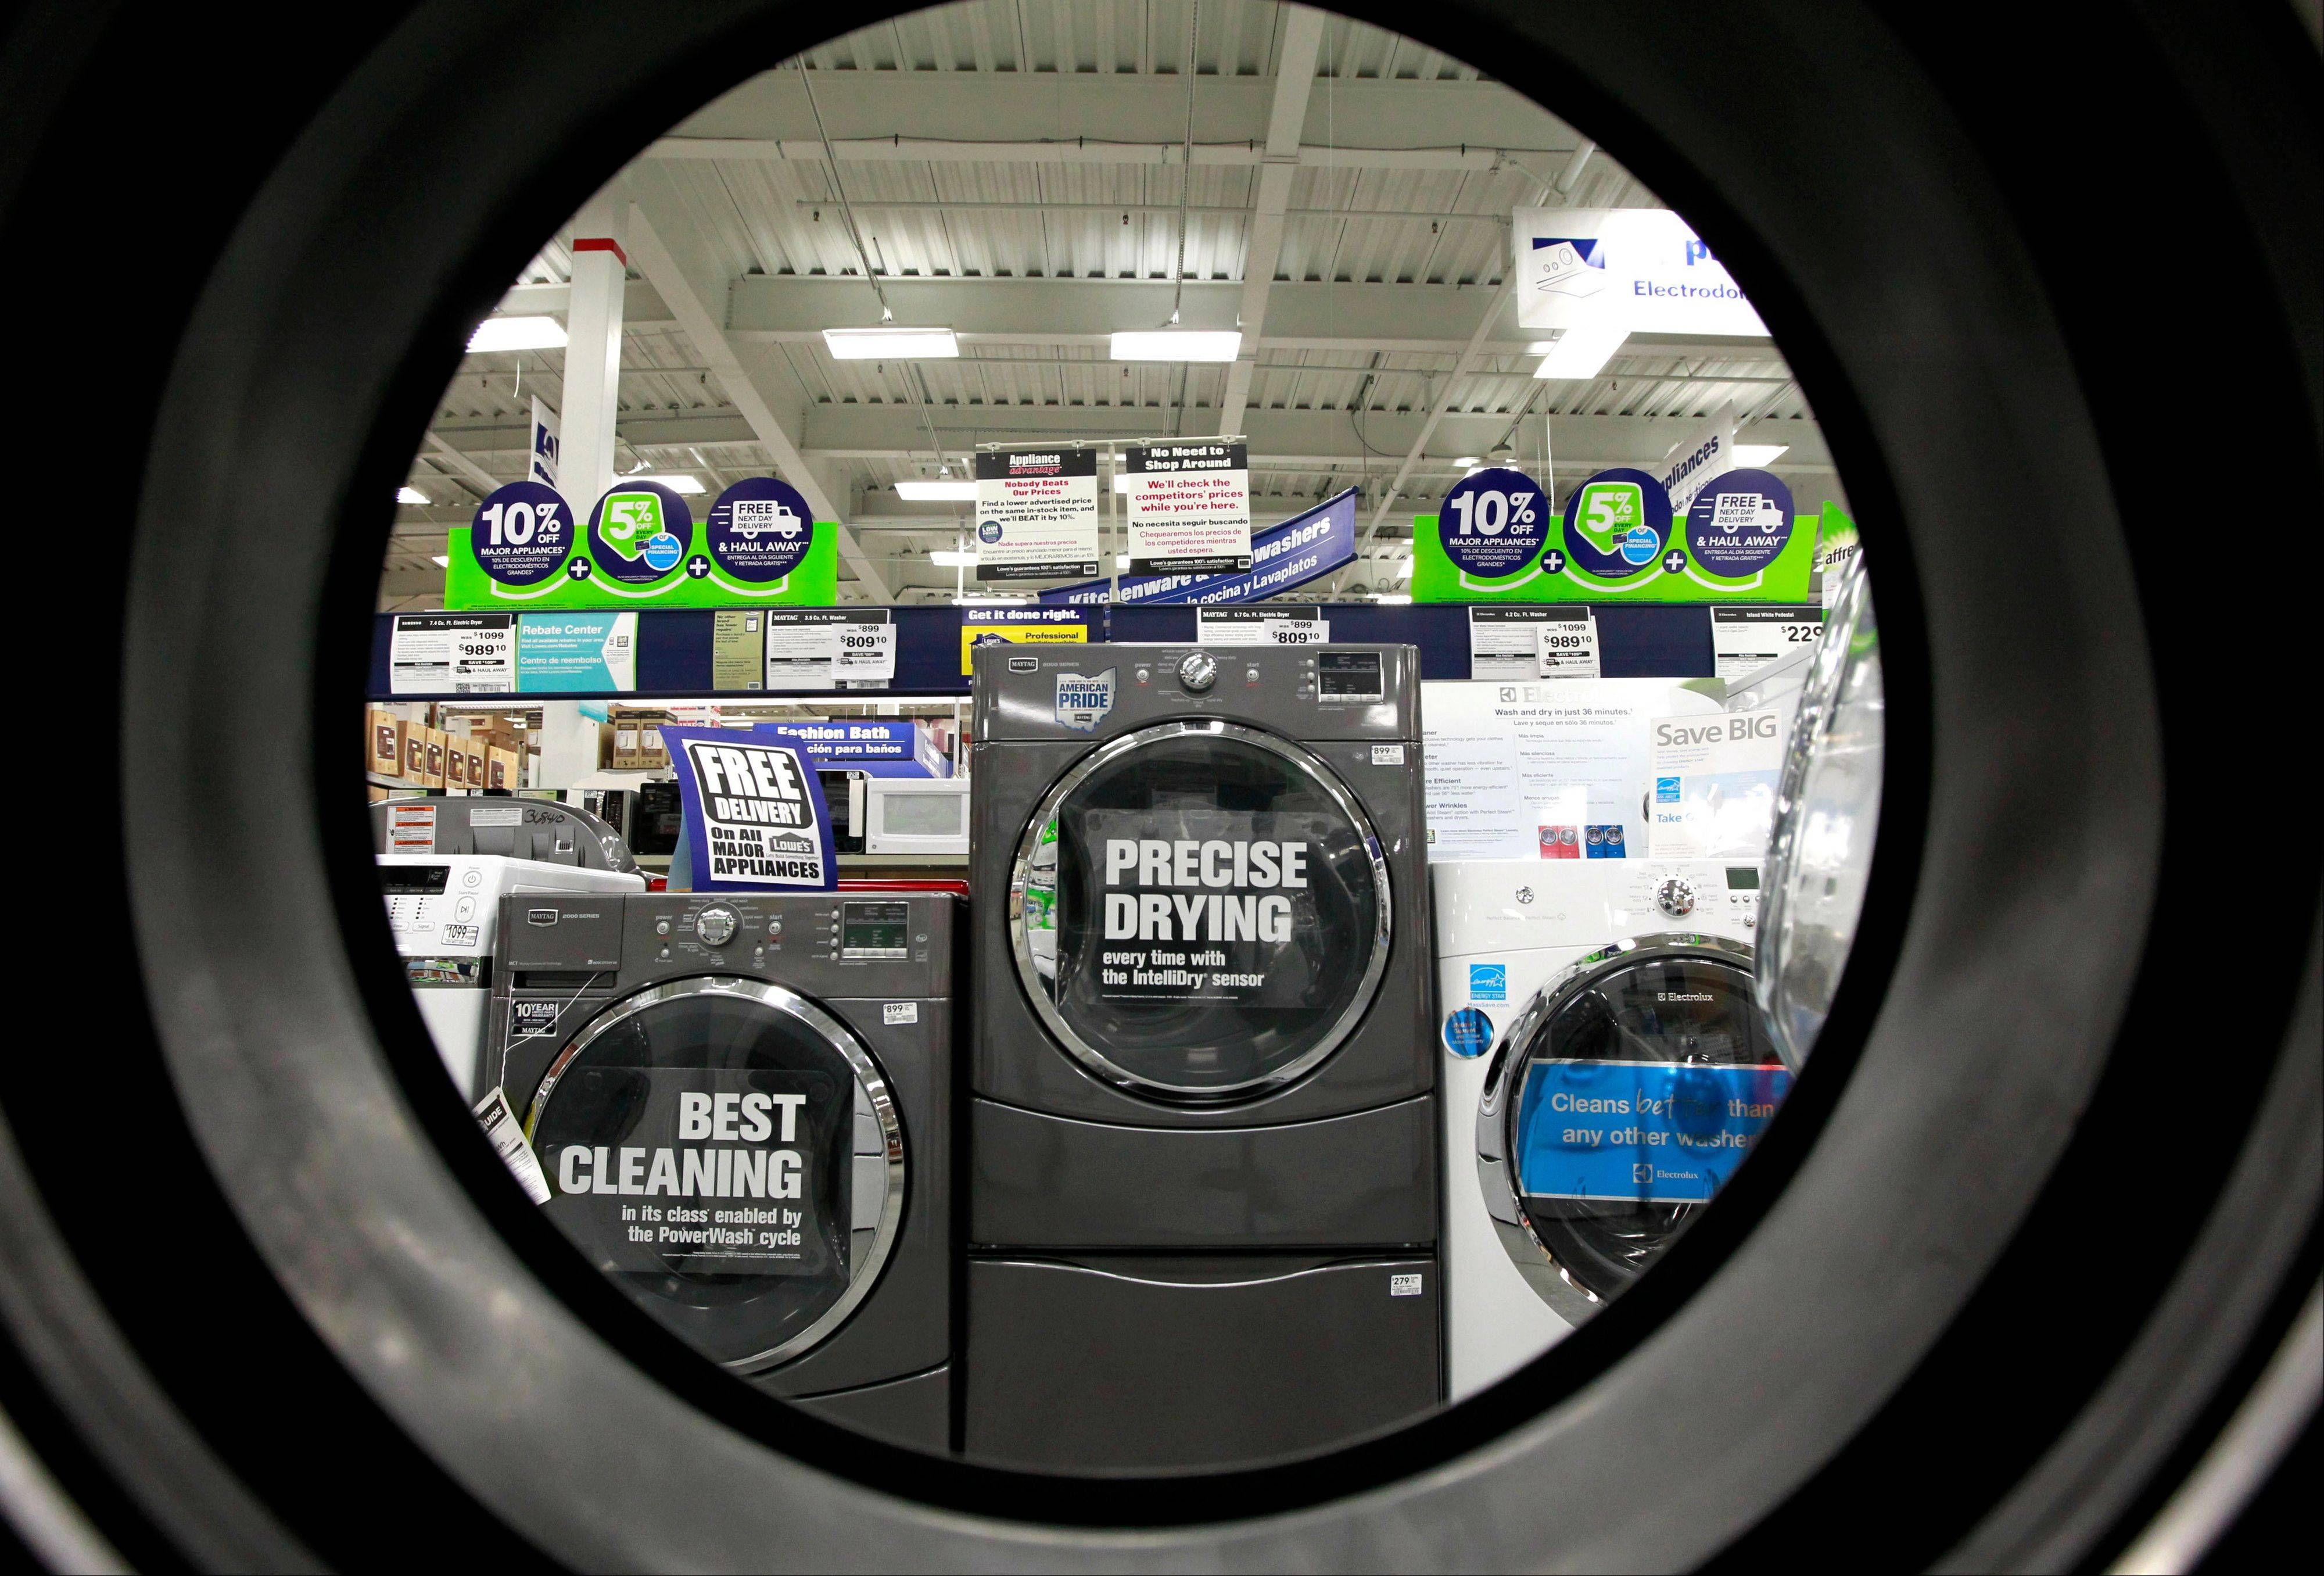 The Commerce Department said Monday that orders for durable goods plunged 7.3 percent in July, the steepest drop in nearly a year. Excluding the volatile transportation category, orders fell just 0.6 percent. Both declines followed three straight months of increases.